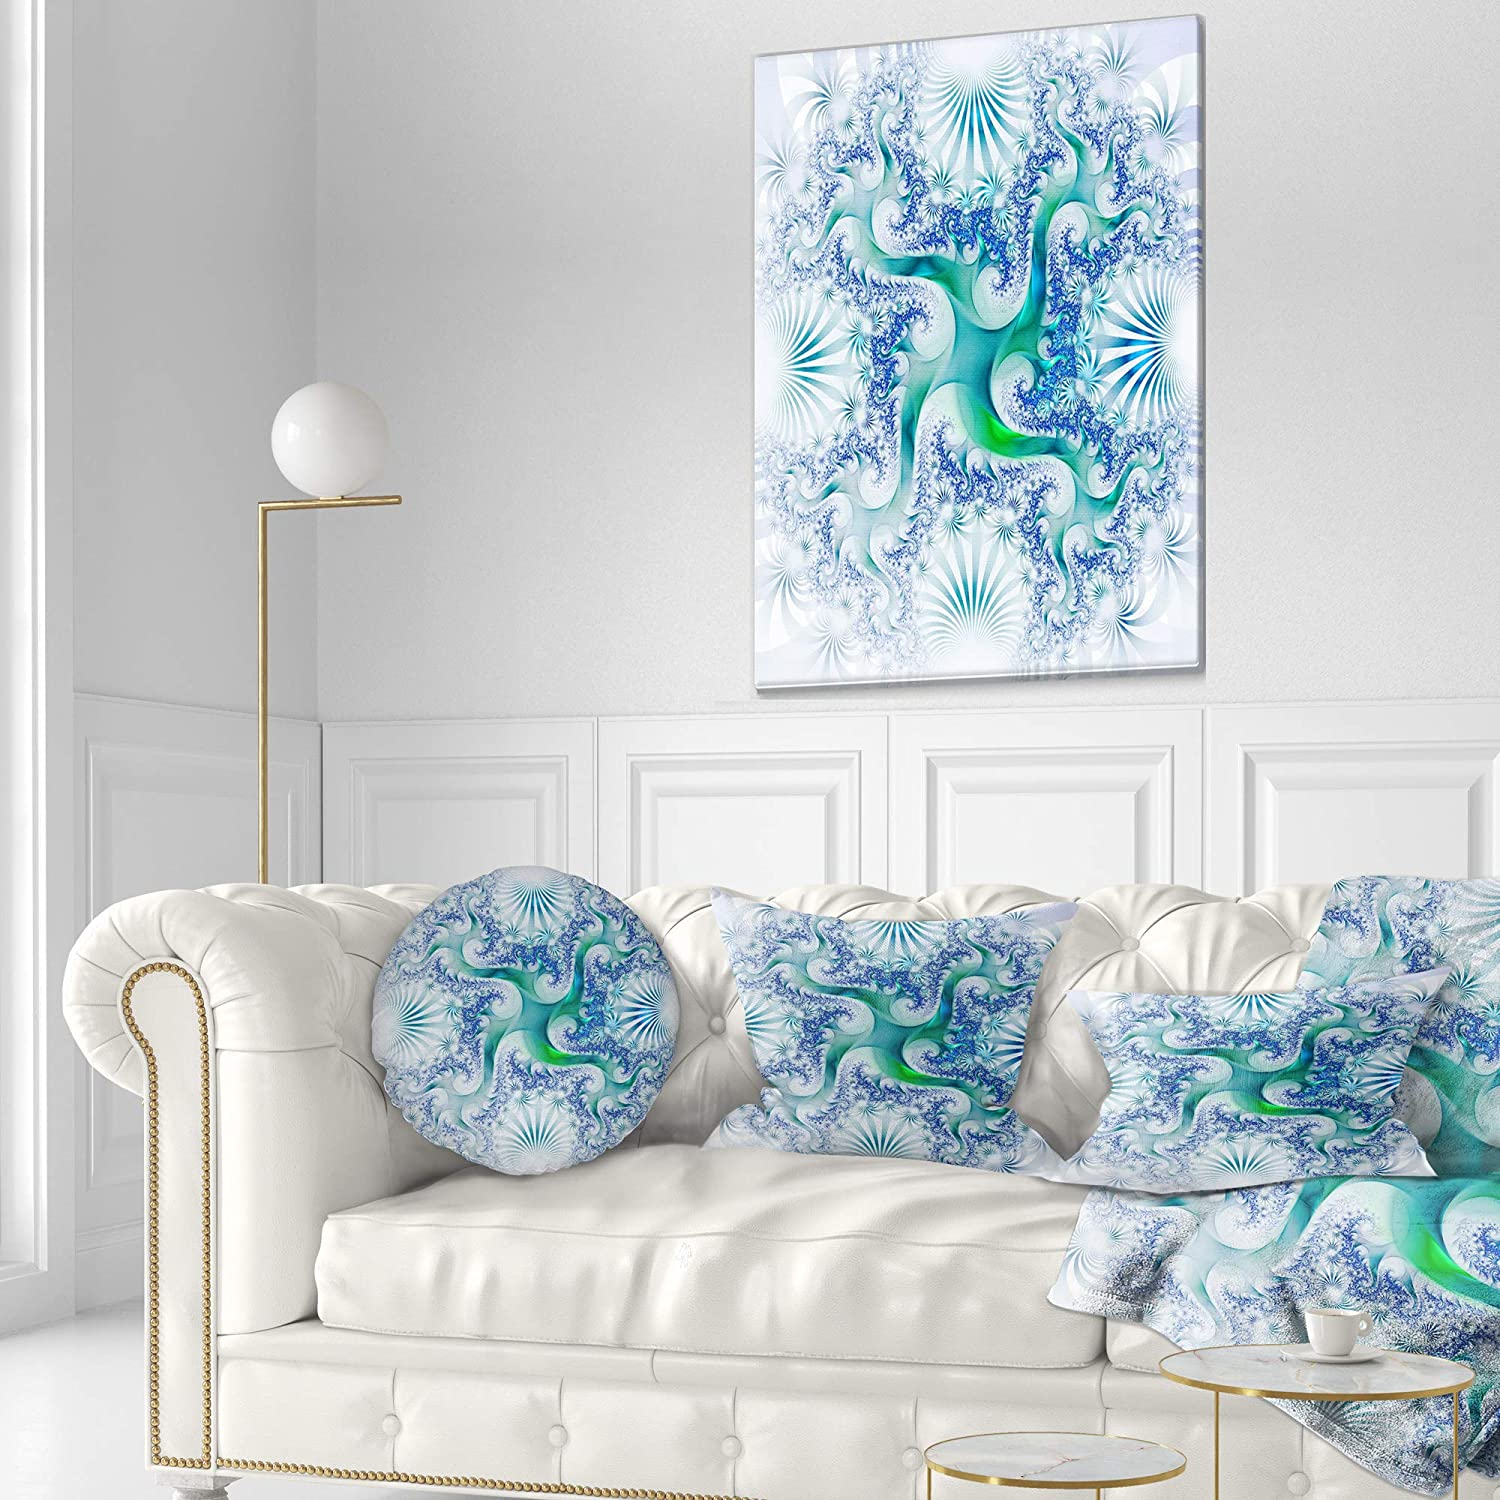 Insert Printed On Both Side Designart CU12095-12-20 Light Blue and Green Fractal Design Abstract Lumbar Cushion Cover for Living Room x 20 in 12 in Sofa Throw Pillow in